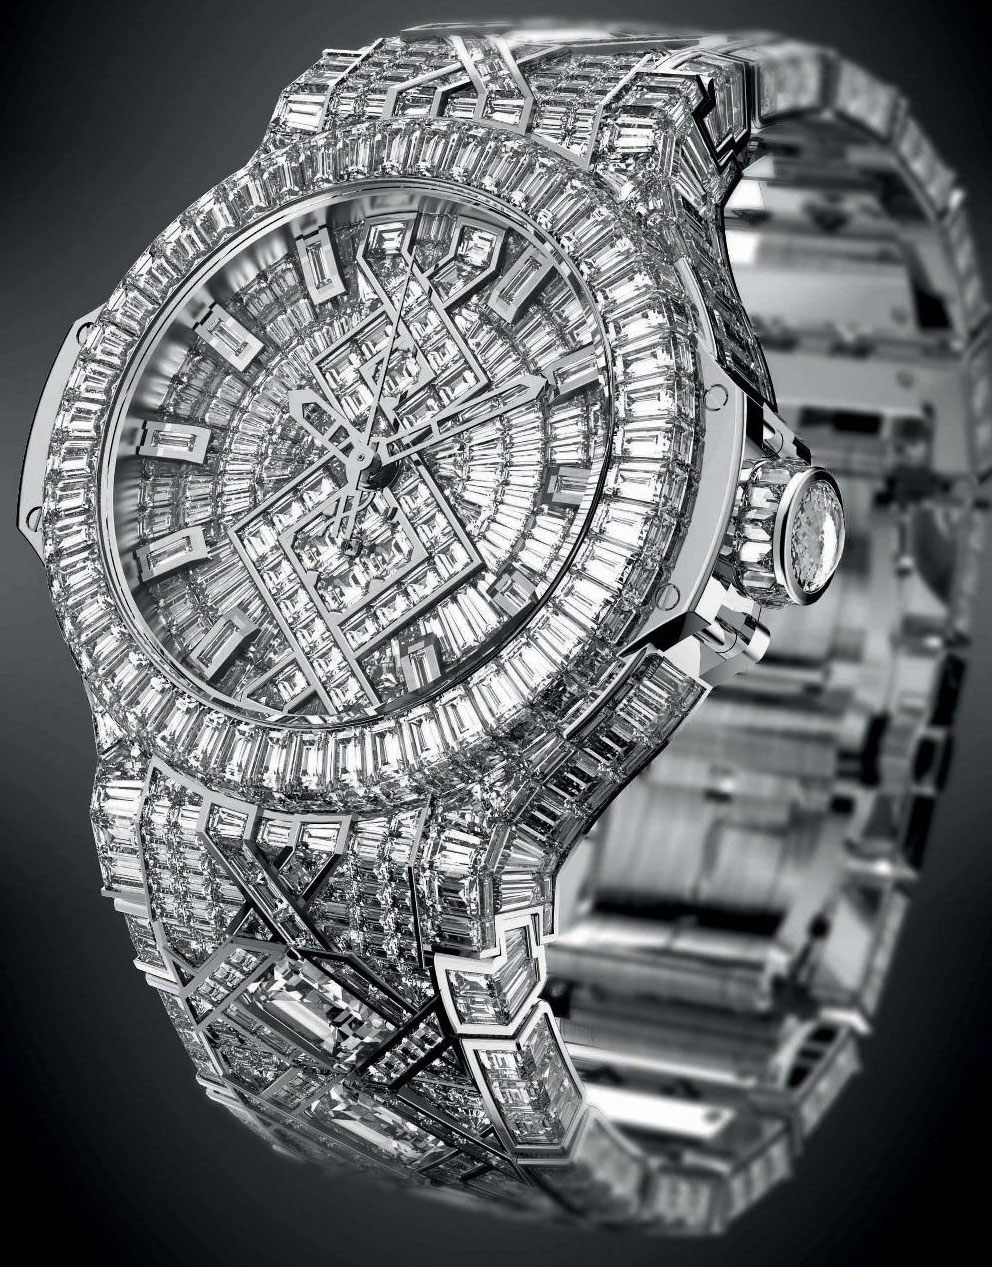 The Hublot 5 Million Dollar Big Bang